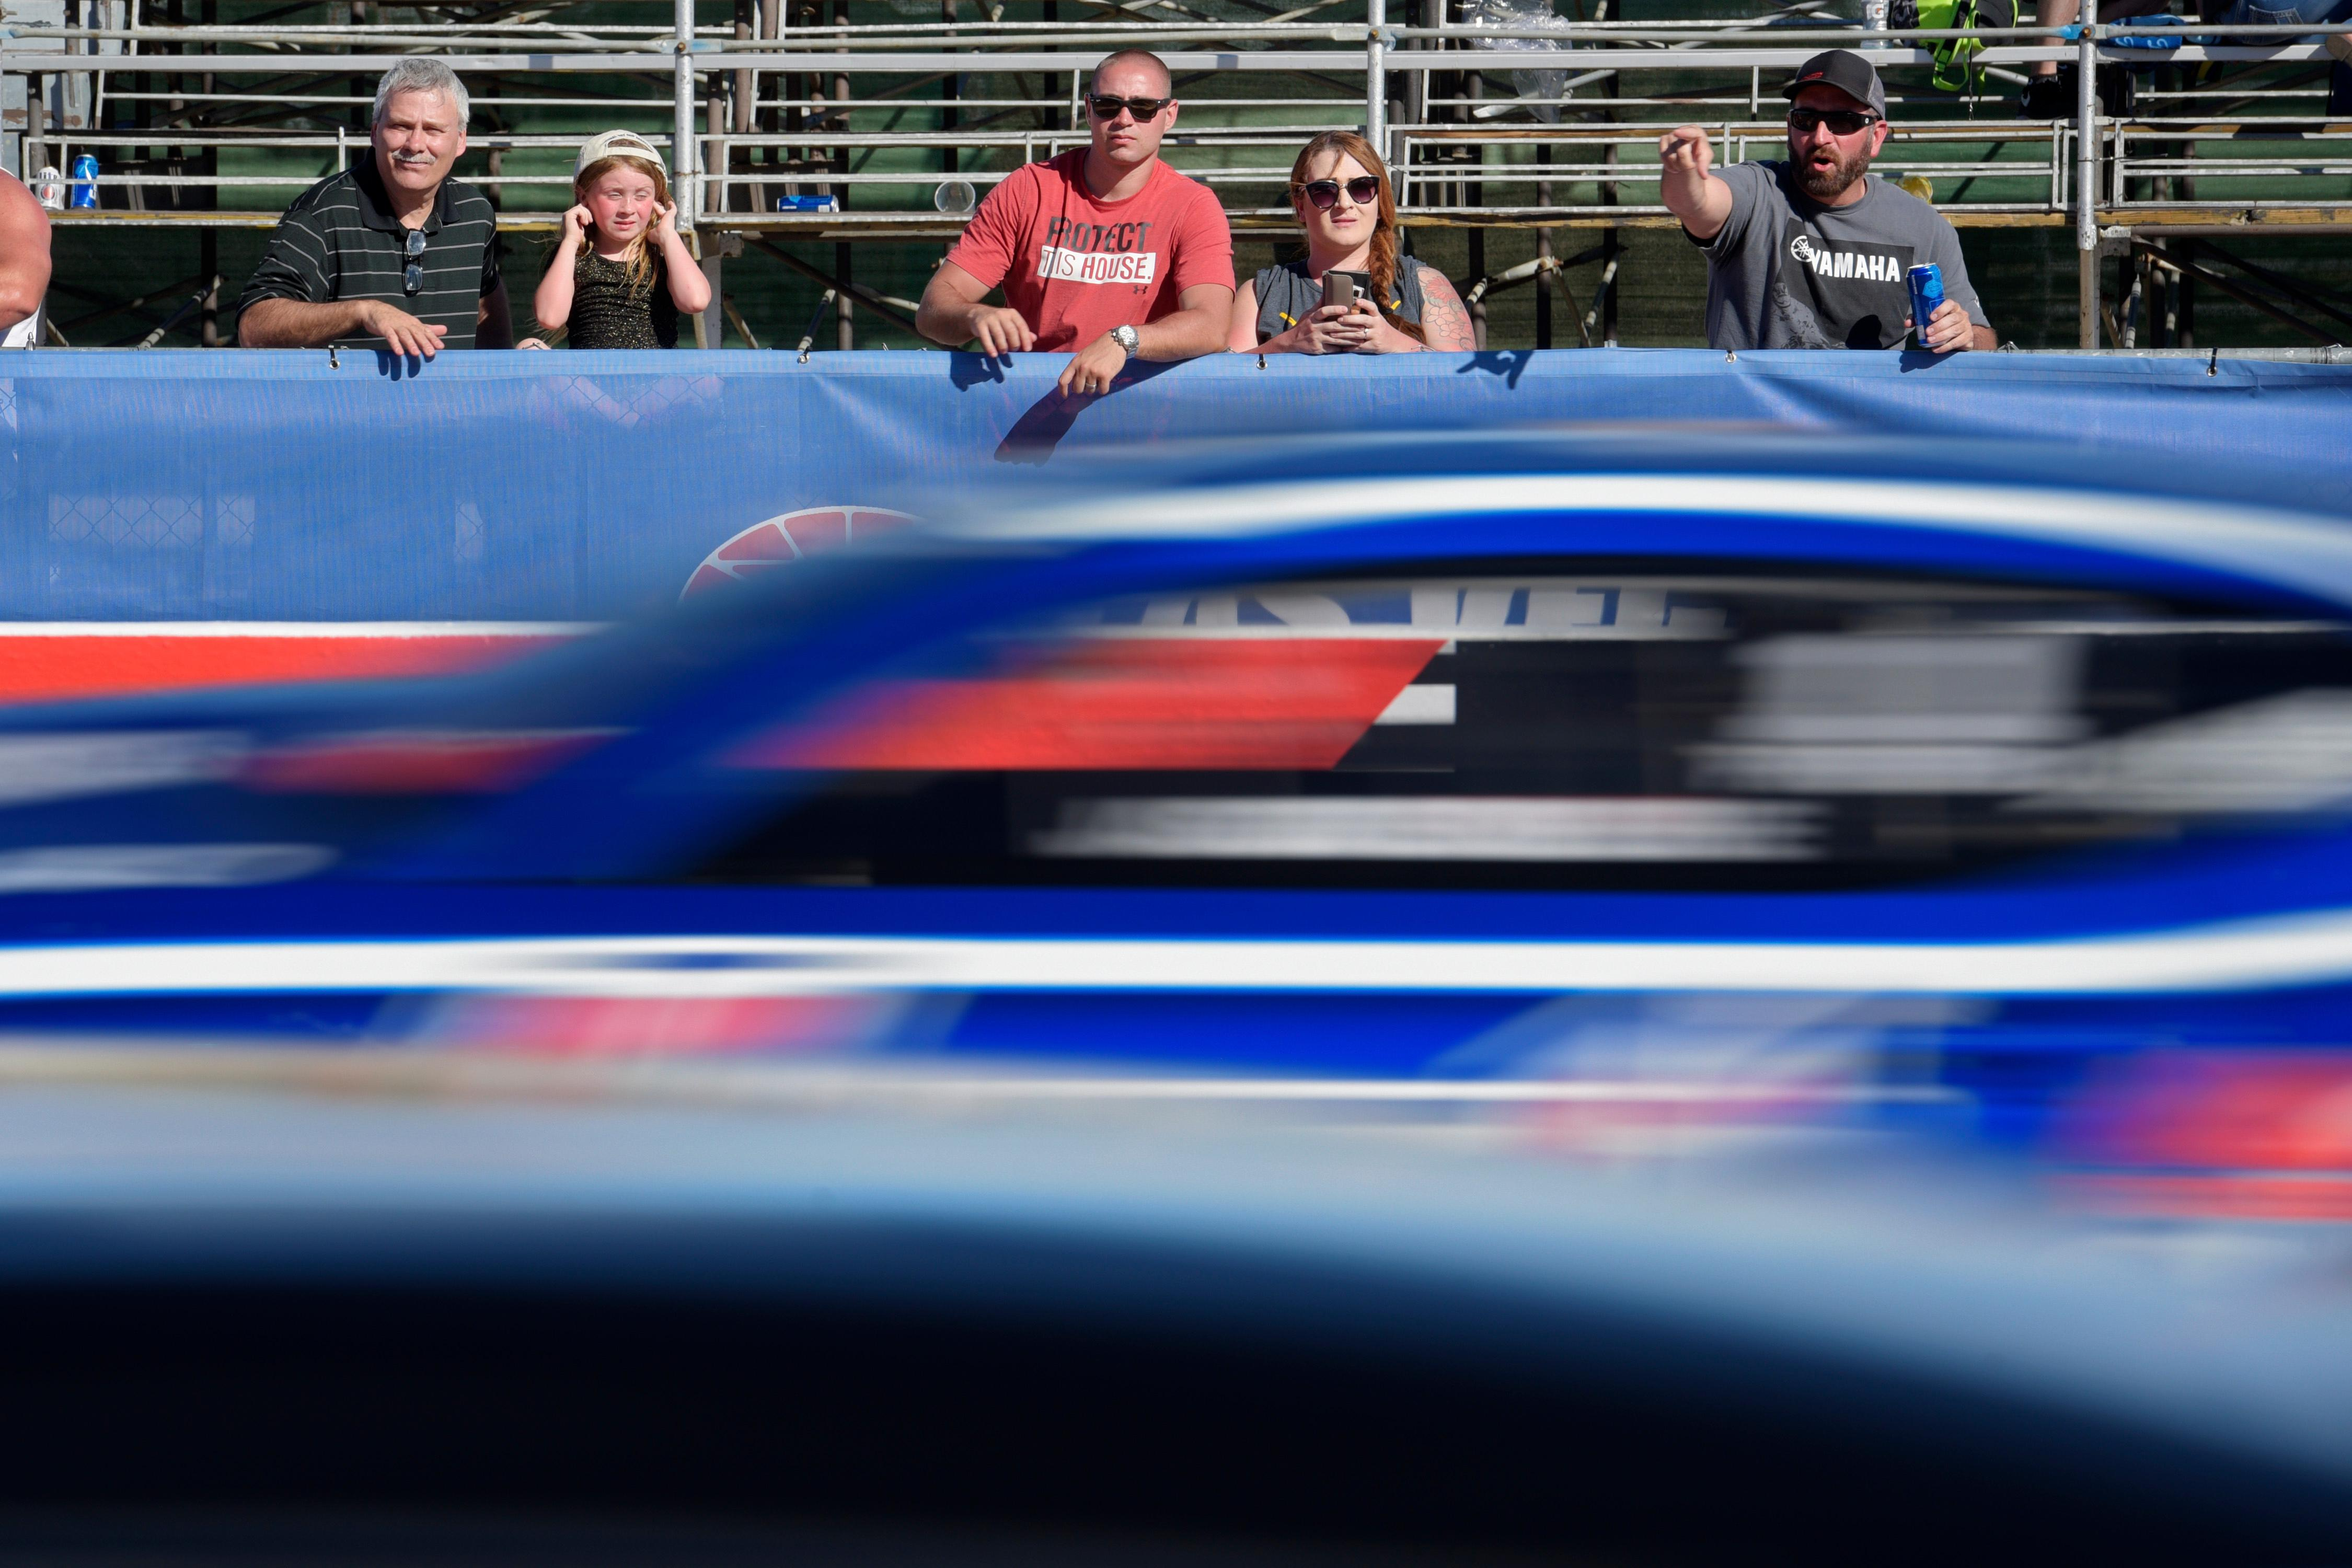 Race fans watch the action during the NHRA DENSO Spark Plug Nationals at The Strip at the Las Vegas Motor Speedway Sunday, April 2, 2017. (Sam Morris/Las Vegas News Bureau)